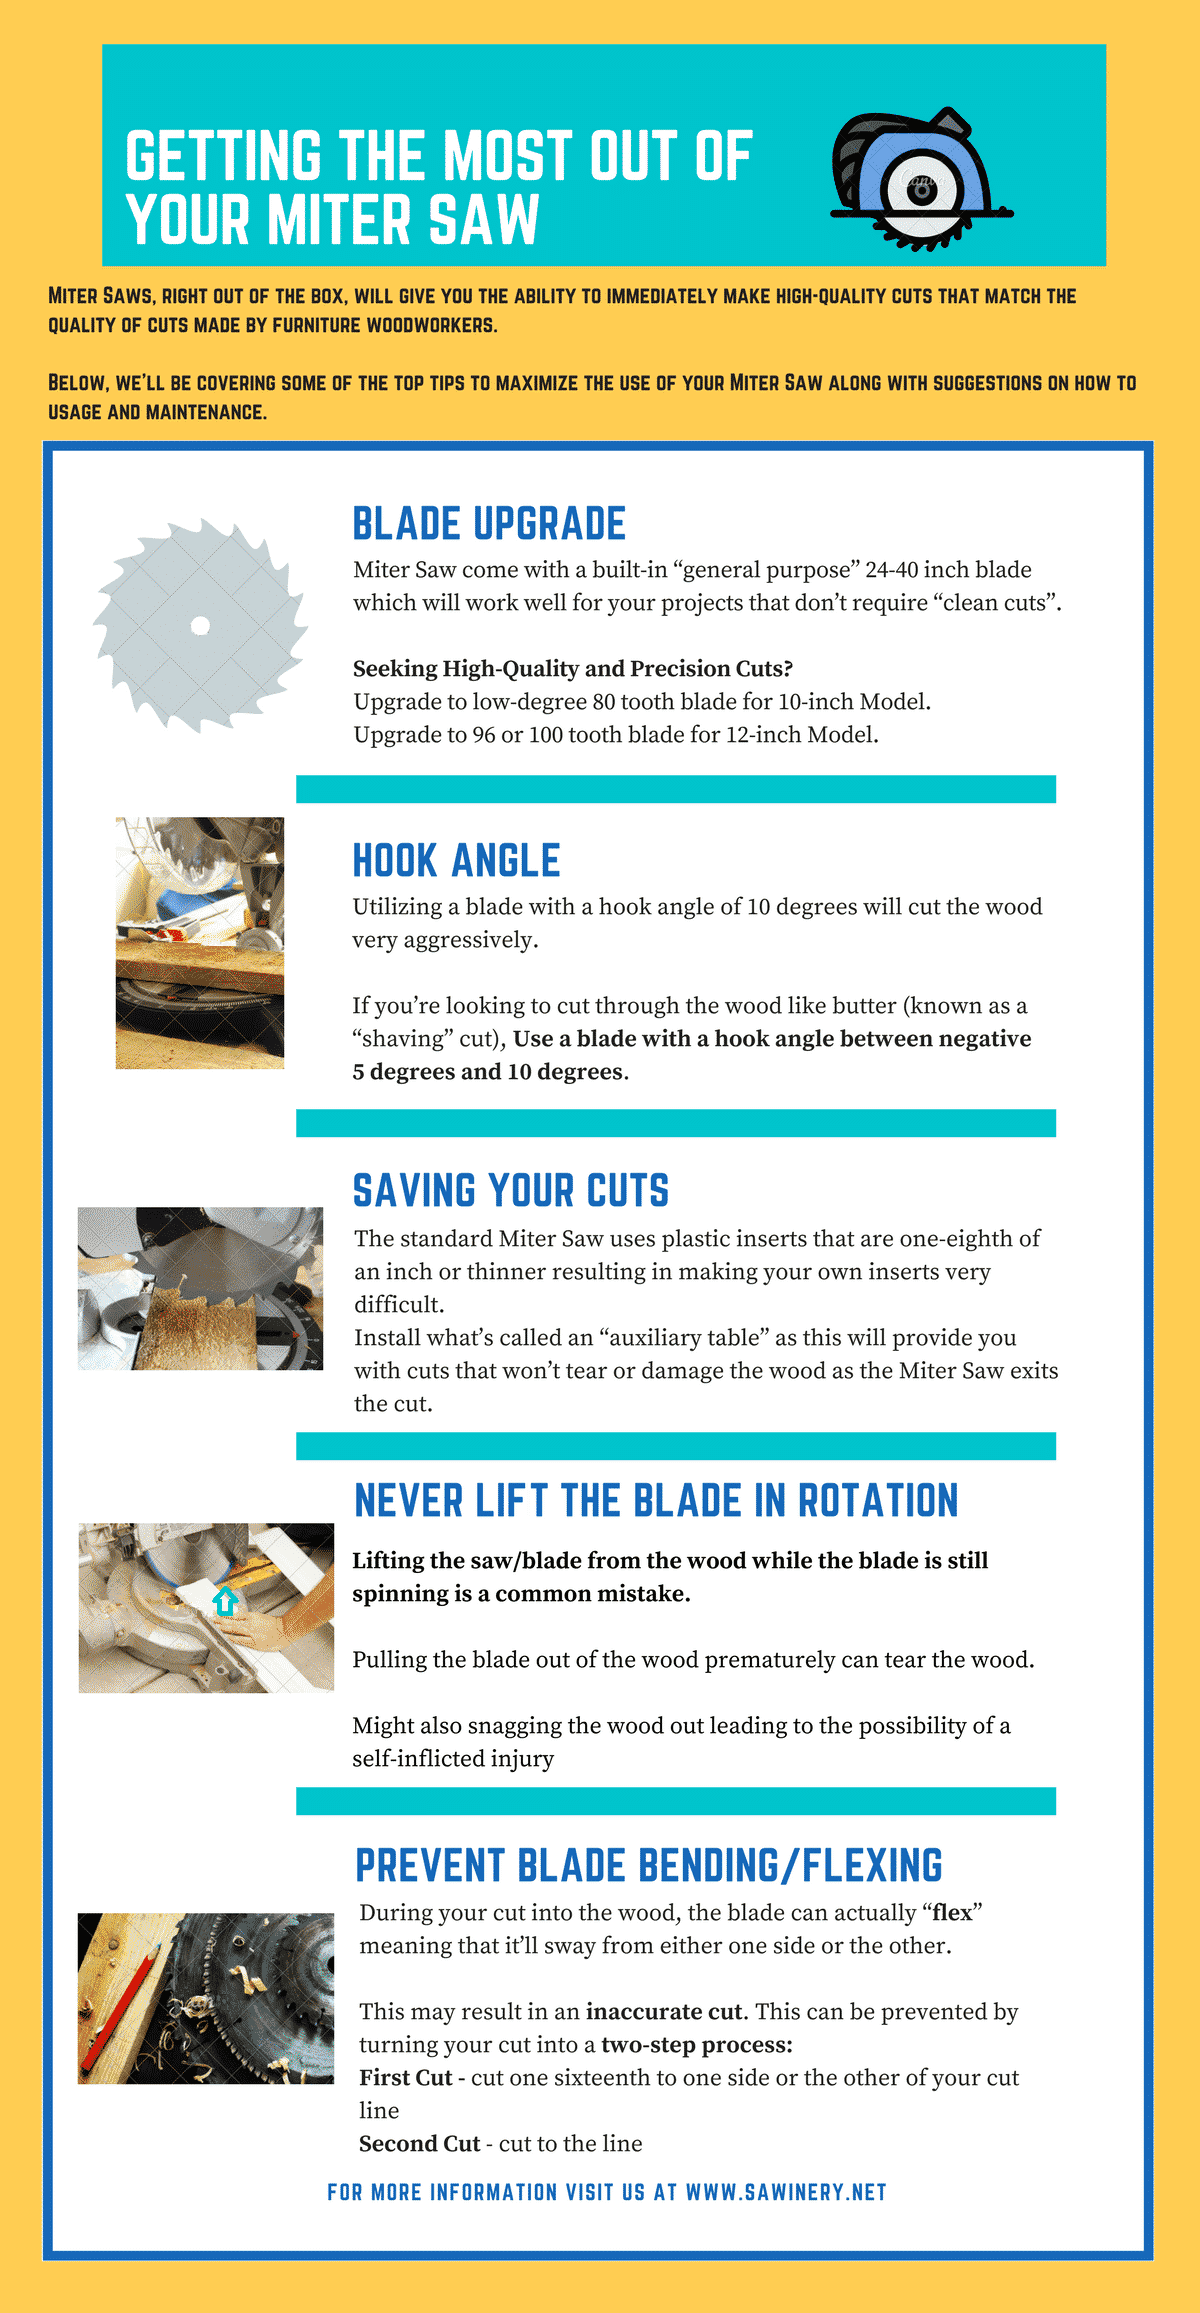 miter saw tips get the most out of your miter saw sawinery